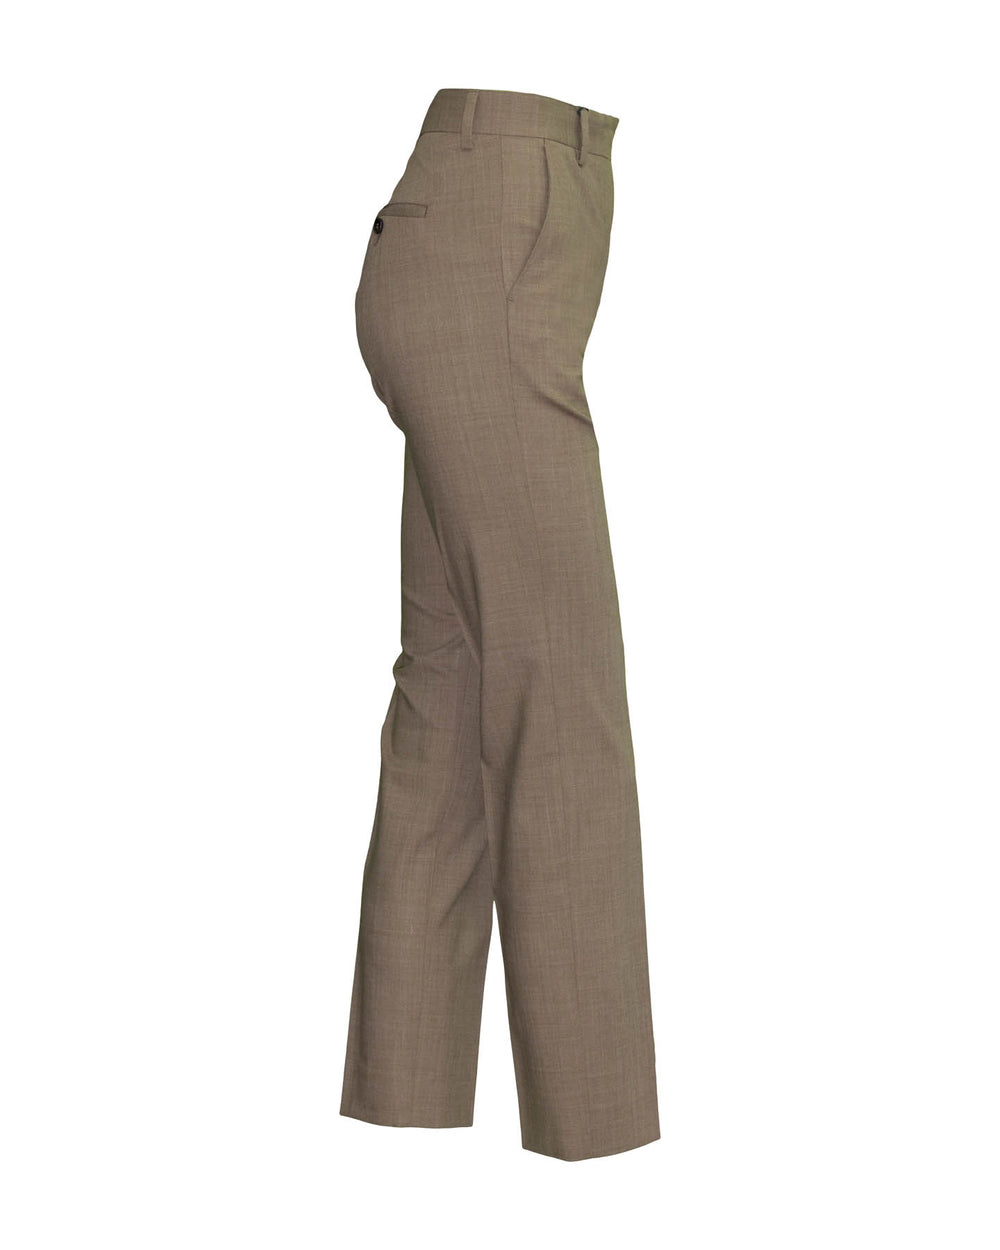 Crio Trousers